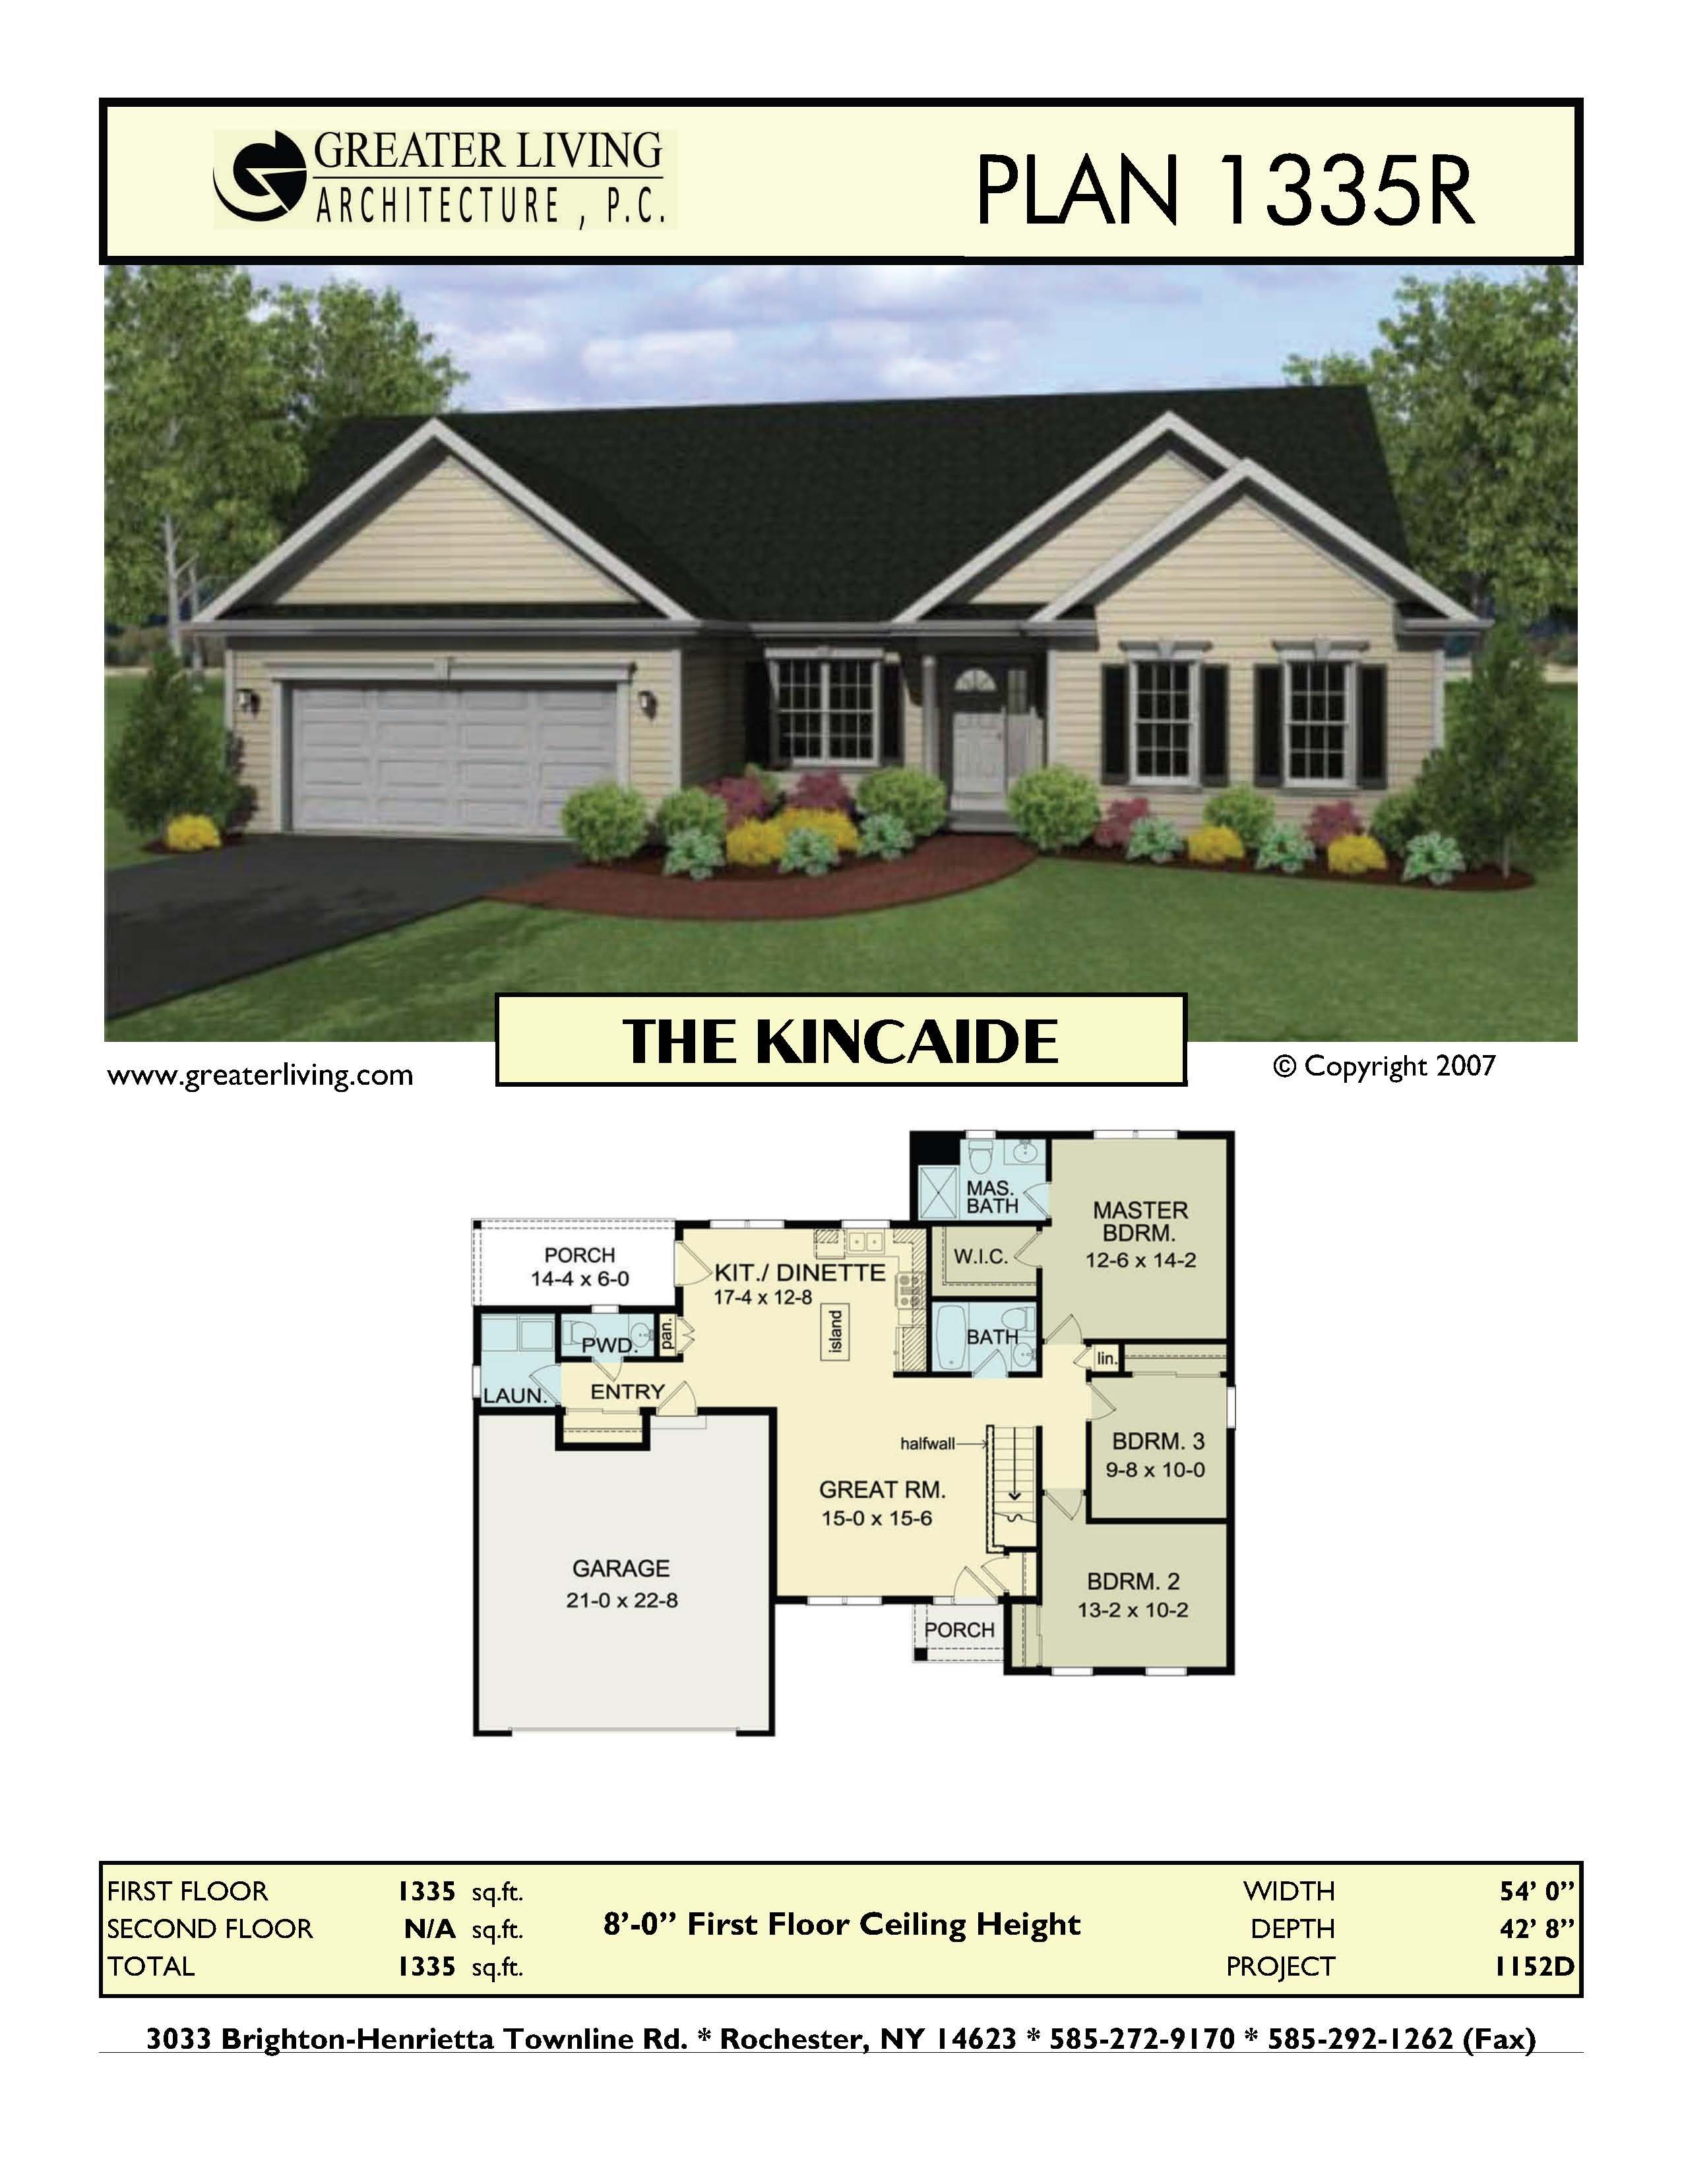 Plan 1335R: THE KINCAIDE | House plans | Pinterest | Architecture ...